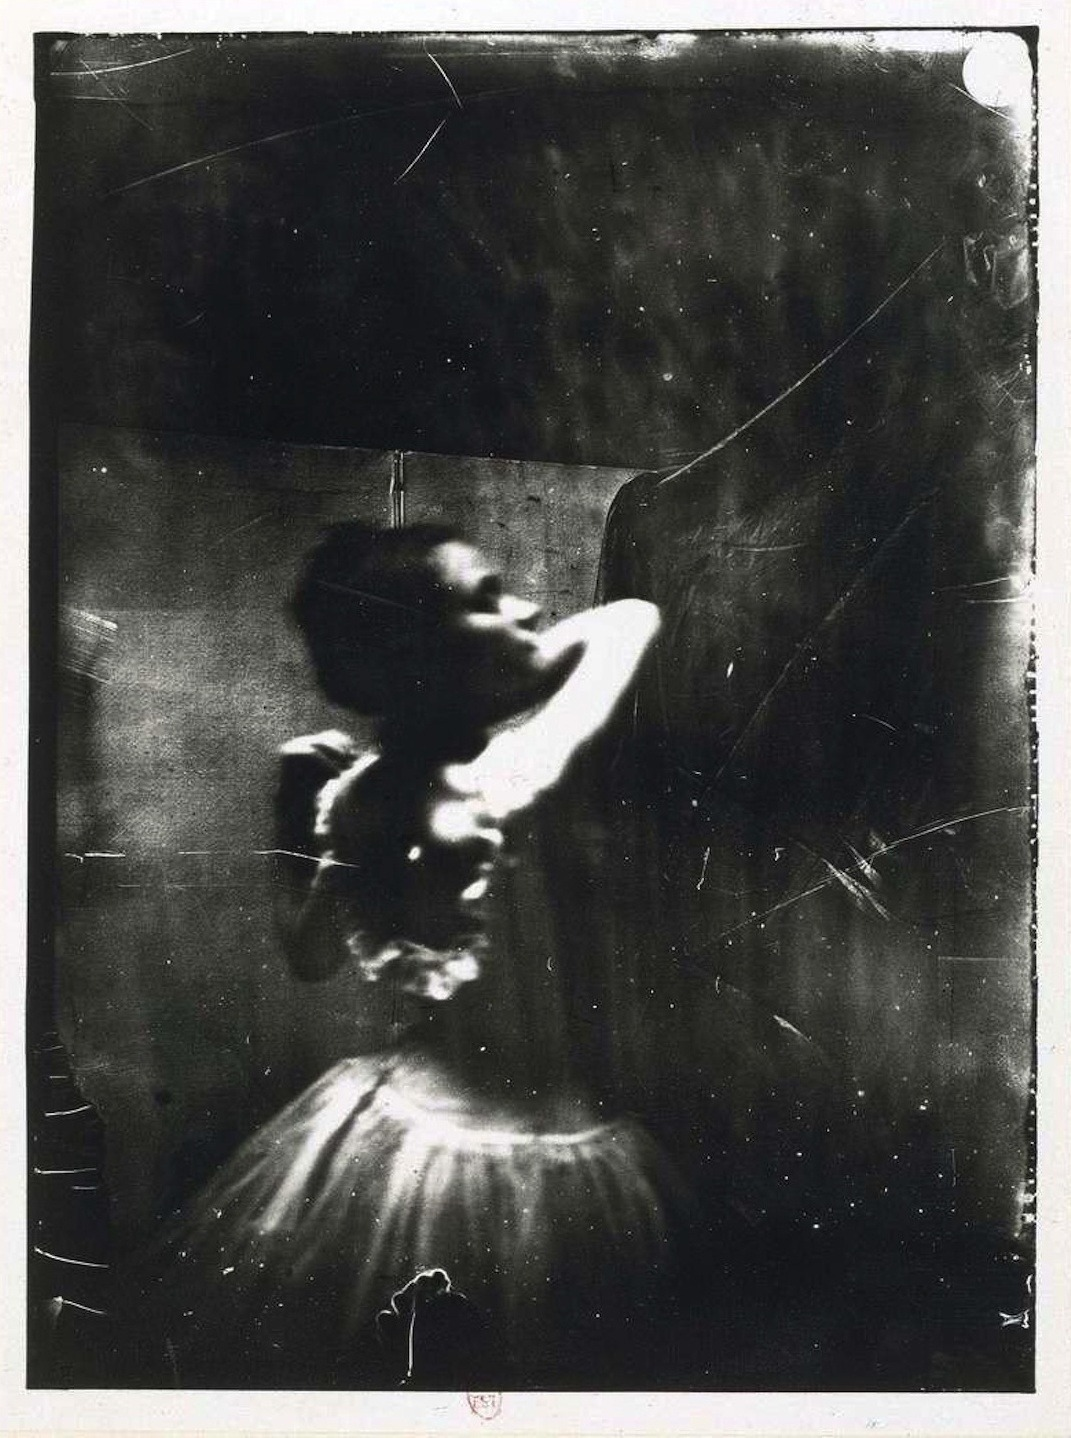 Edgar Degas, Dancer adjusting her shoulder strap, ca. 1900